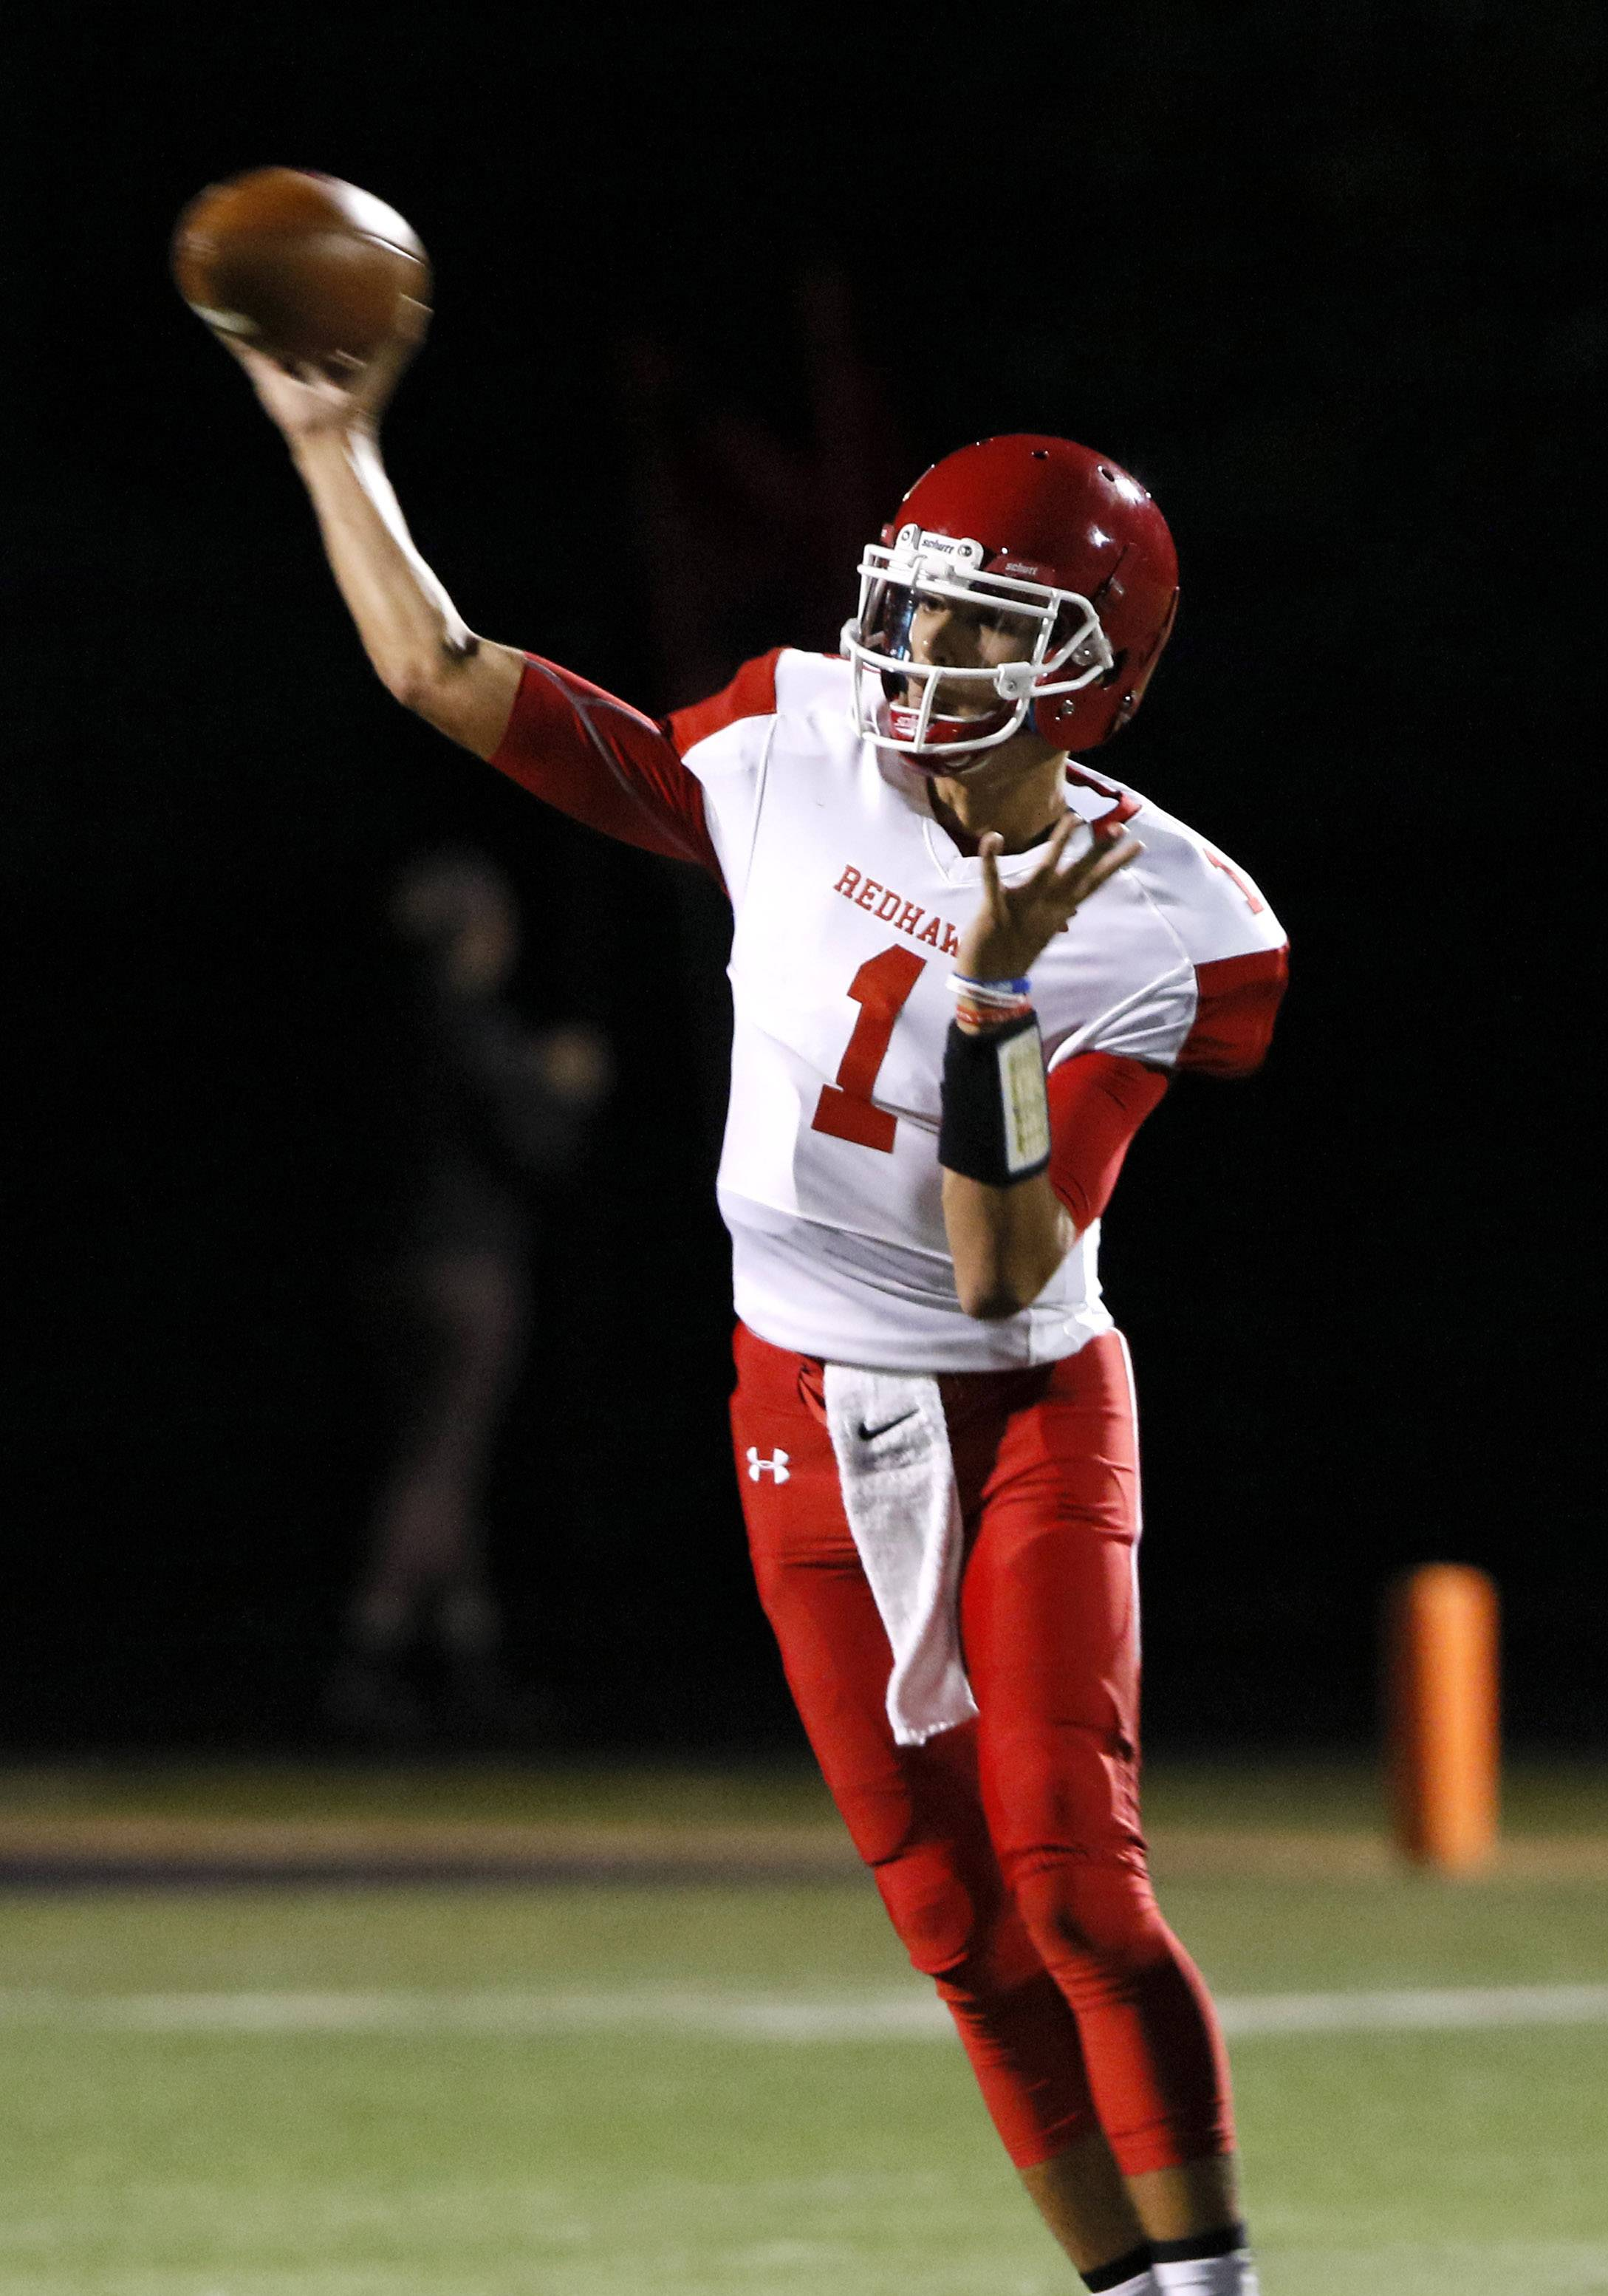 Naperville Central and quarterback Payton Thorne will be at Maine South Saturday for a Class 8A quarterfinal.